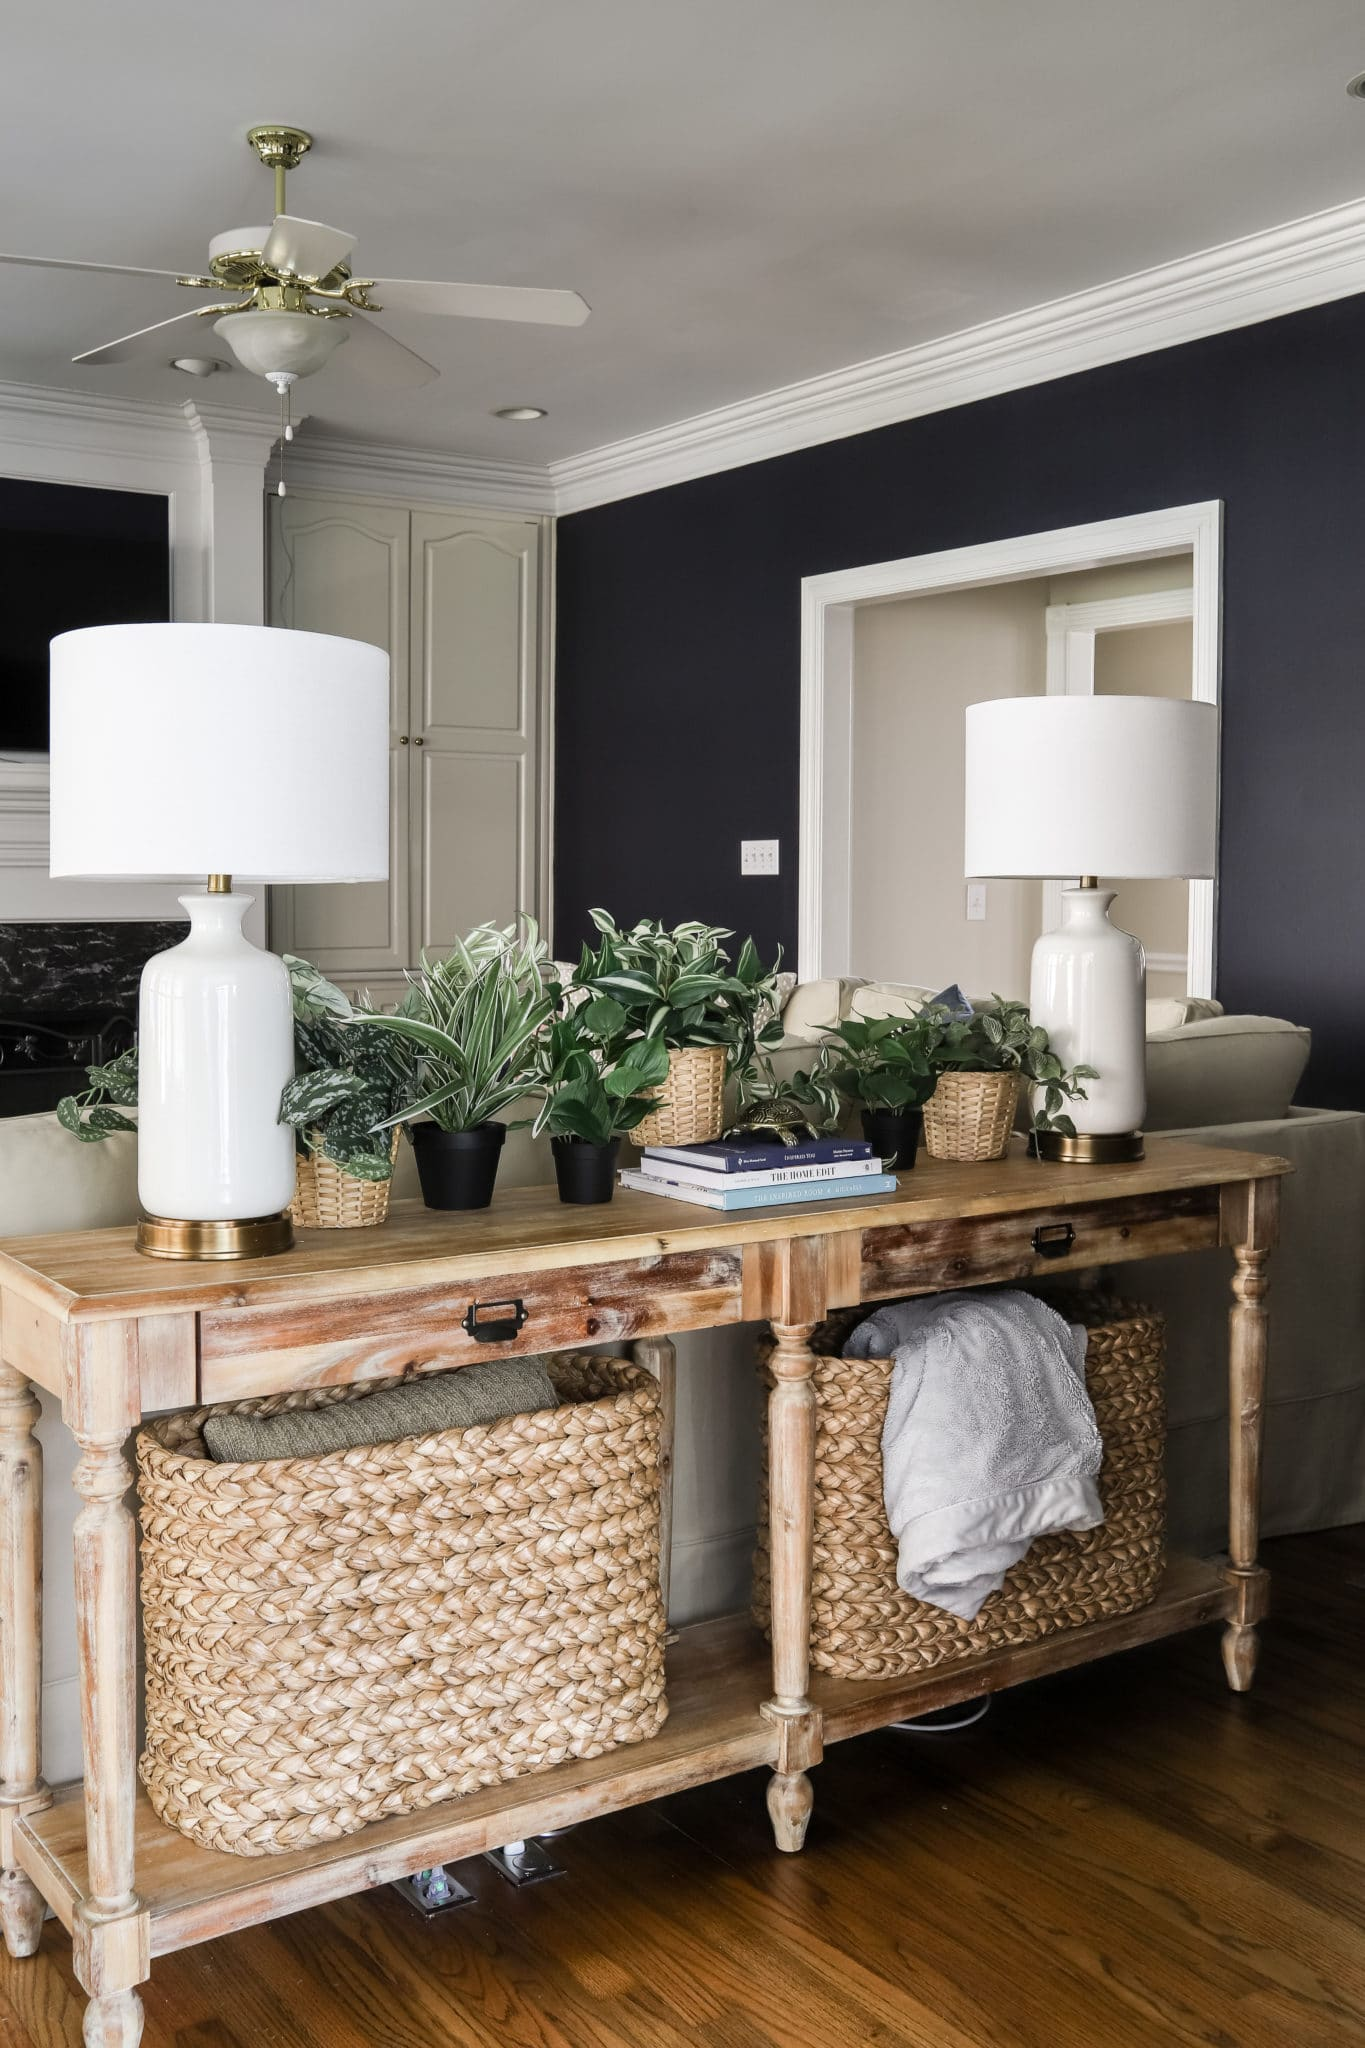 Everett Console Table with console table baskets, white lamps, faux plants and hale navy walls in living room